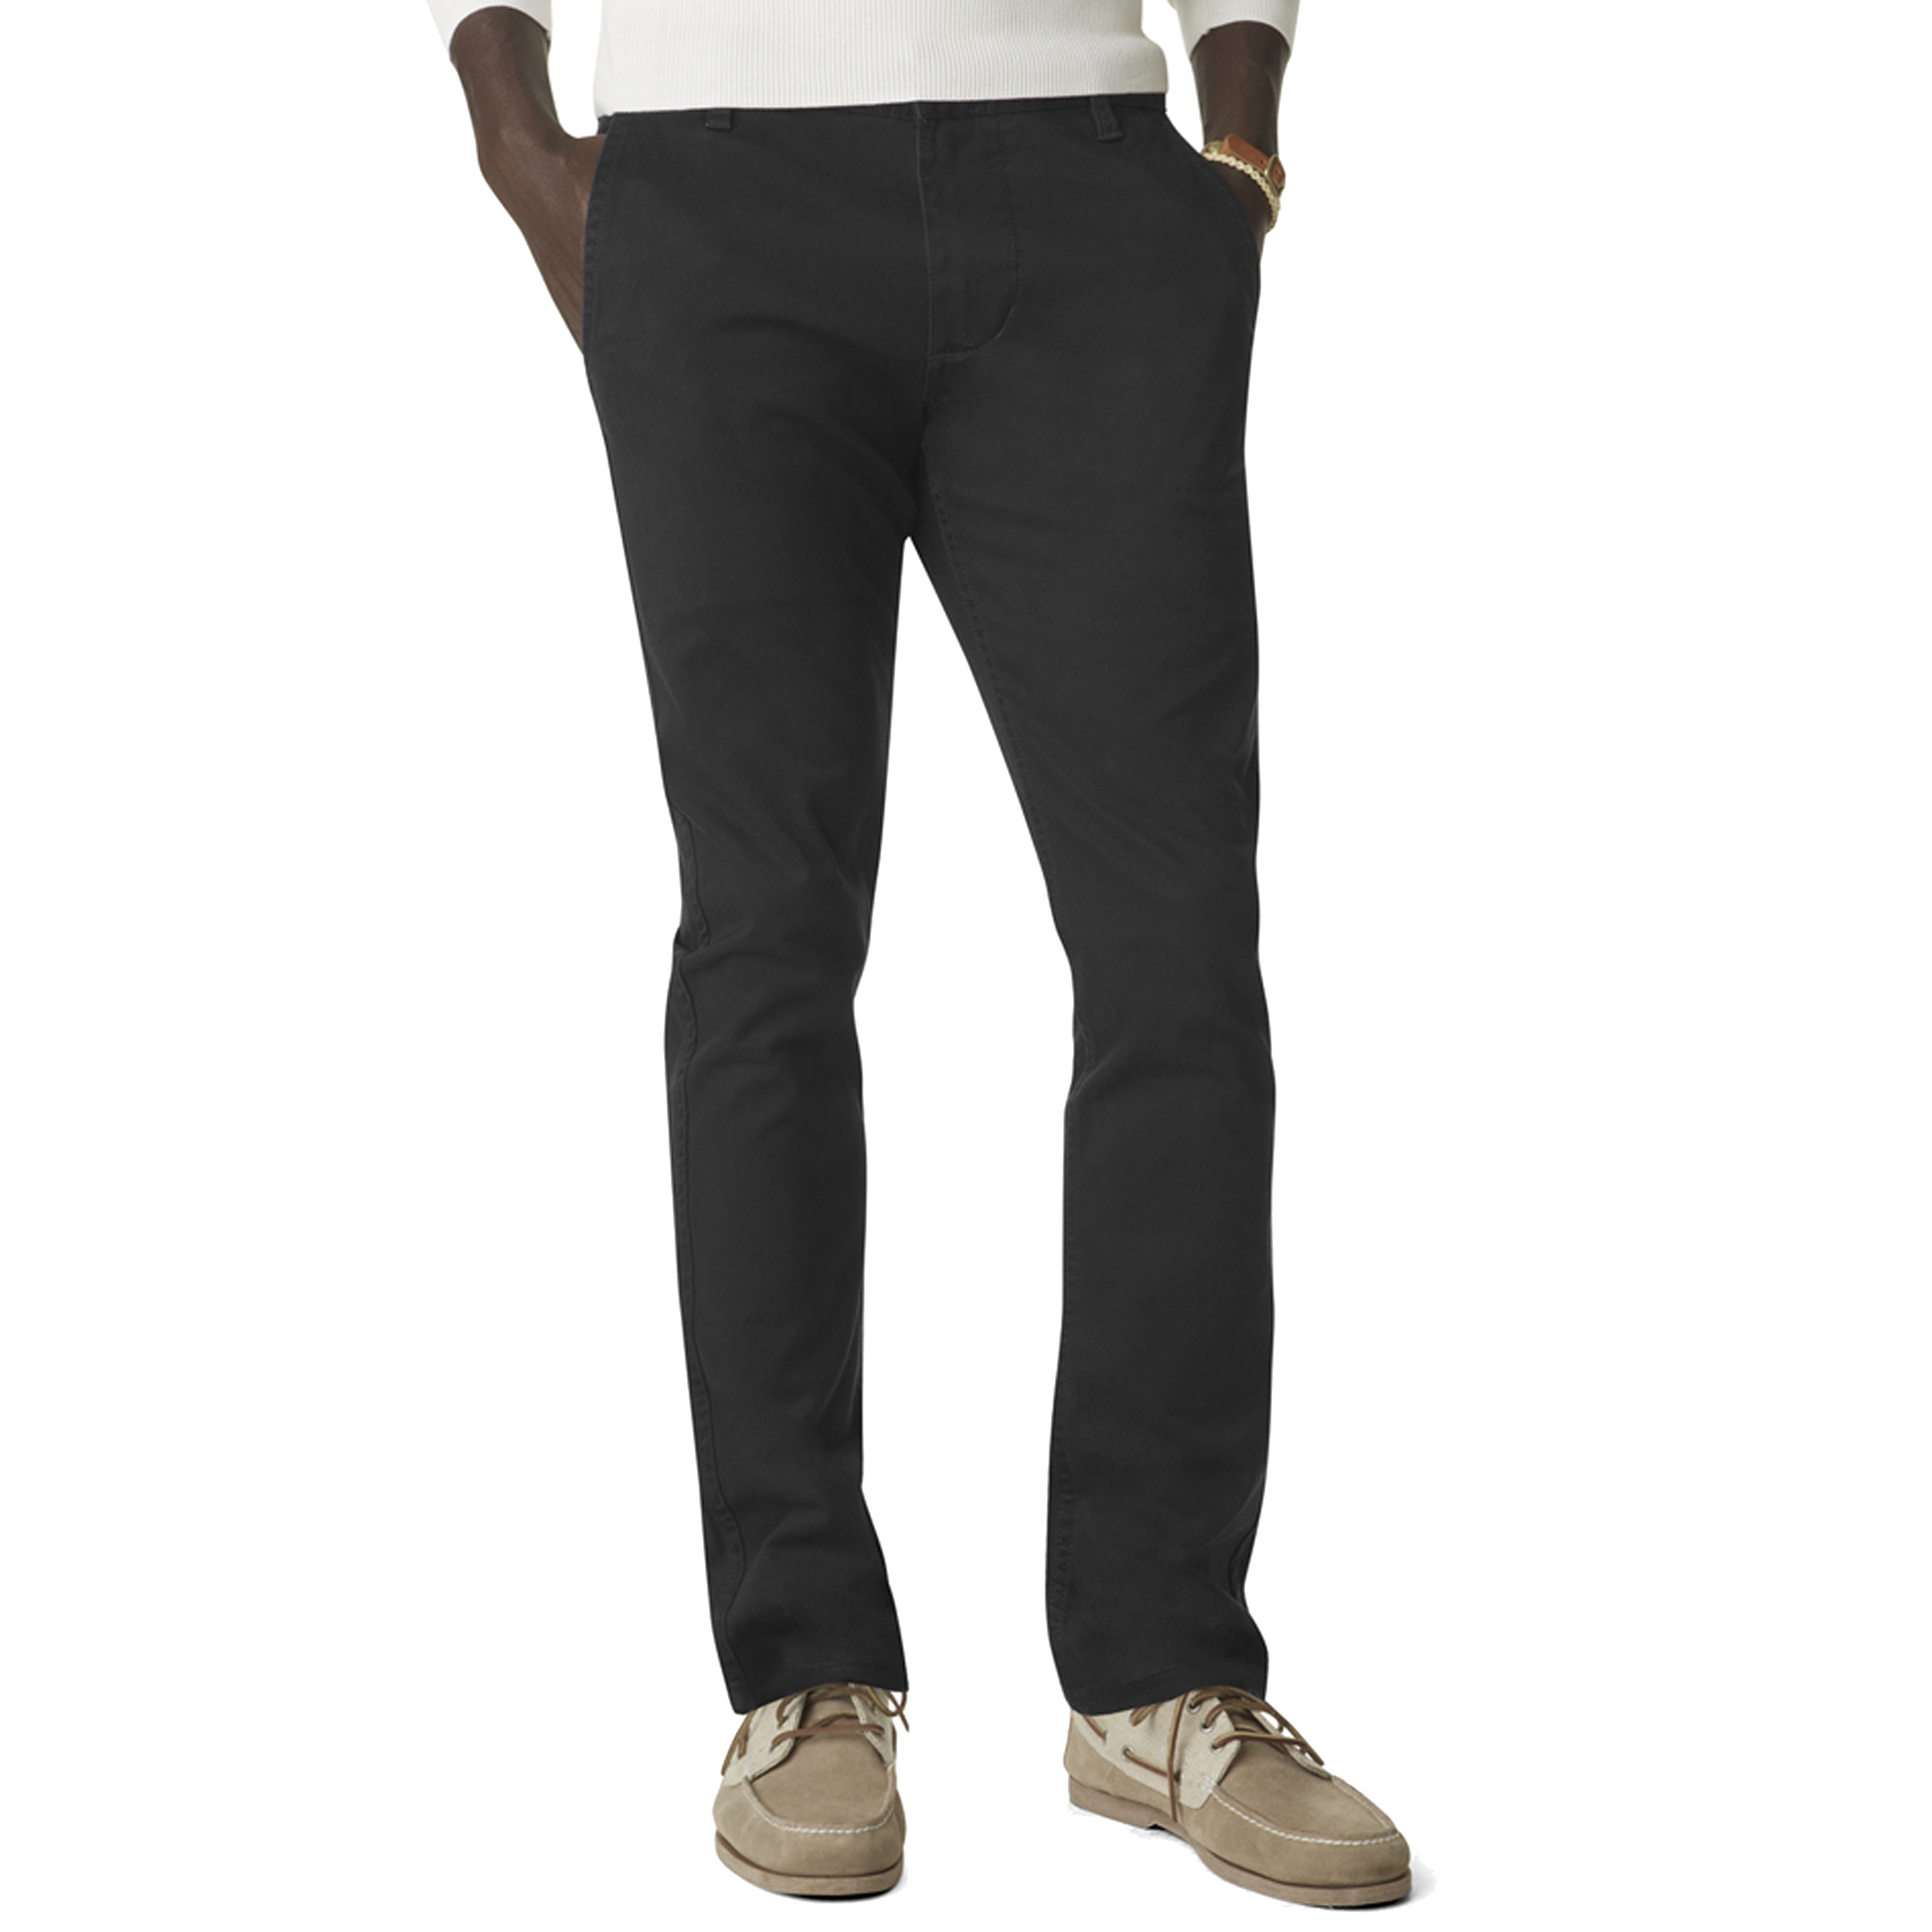 Pantalon alpha stretch khaki original skinny tapered  en sergé de coton noir